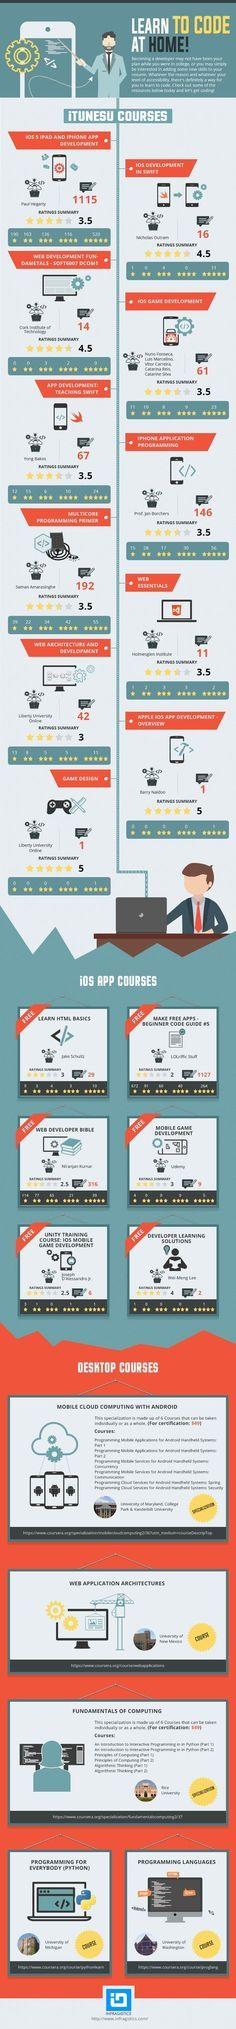 Learn to Code at Home Infographic - http://elearninginfographics.com/learn-to-code-at-home-infographic/